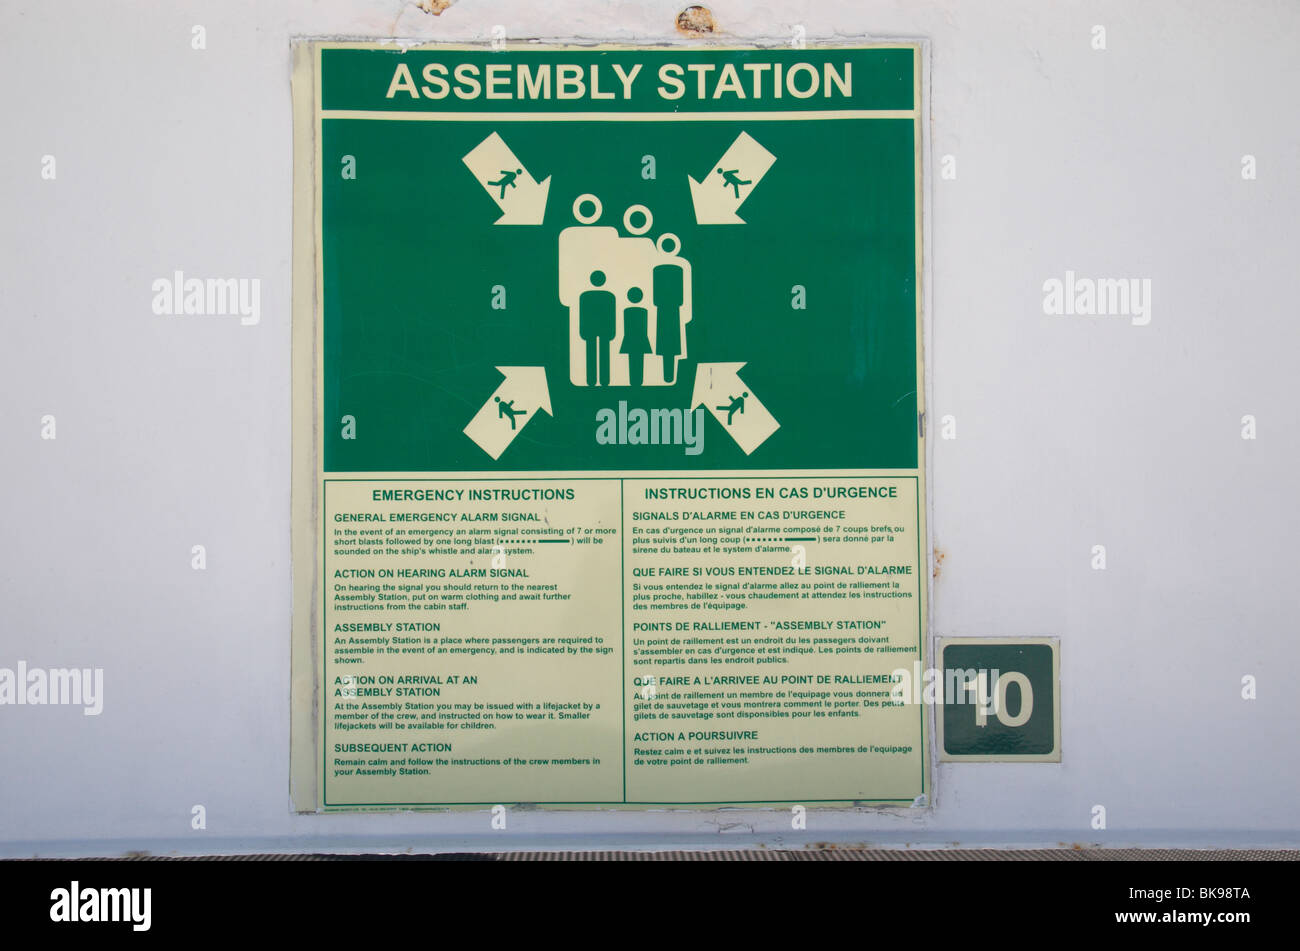 An Assembly Station or Muster Stations meeting sign on the Stena Europe car ferry on the Irish Sea. - Stock Image